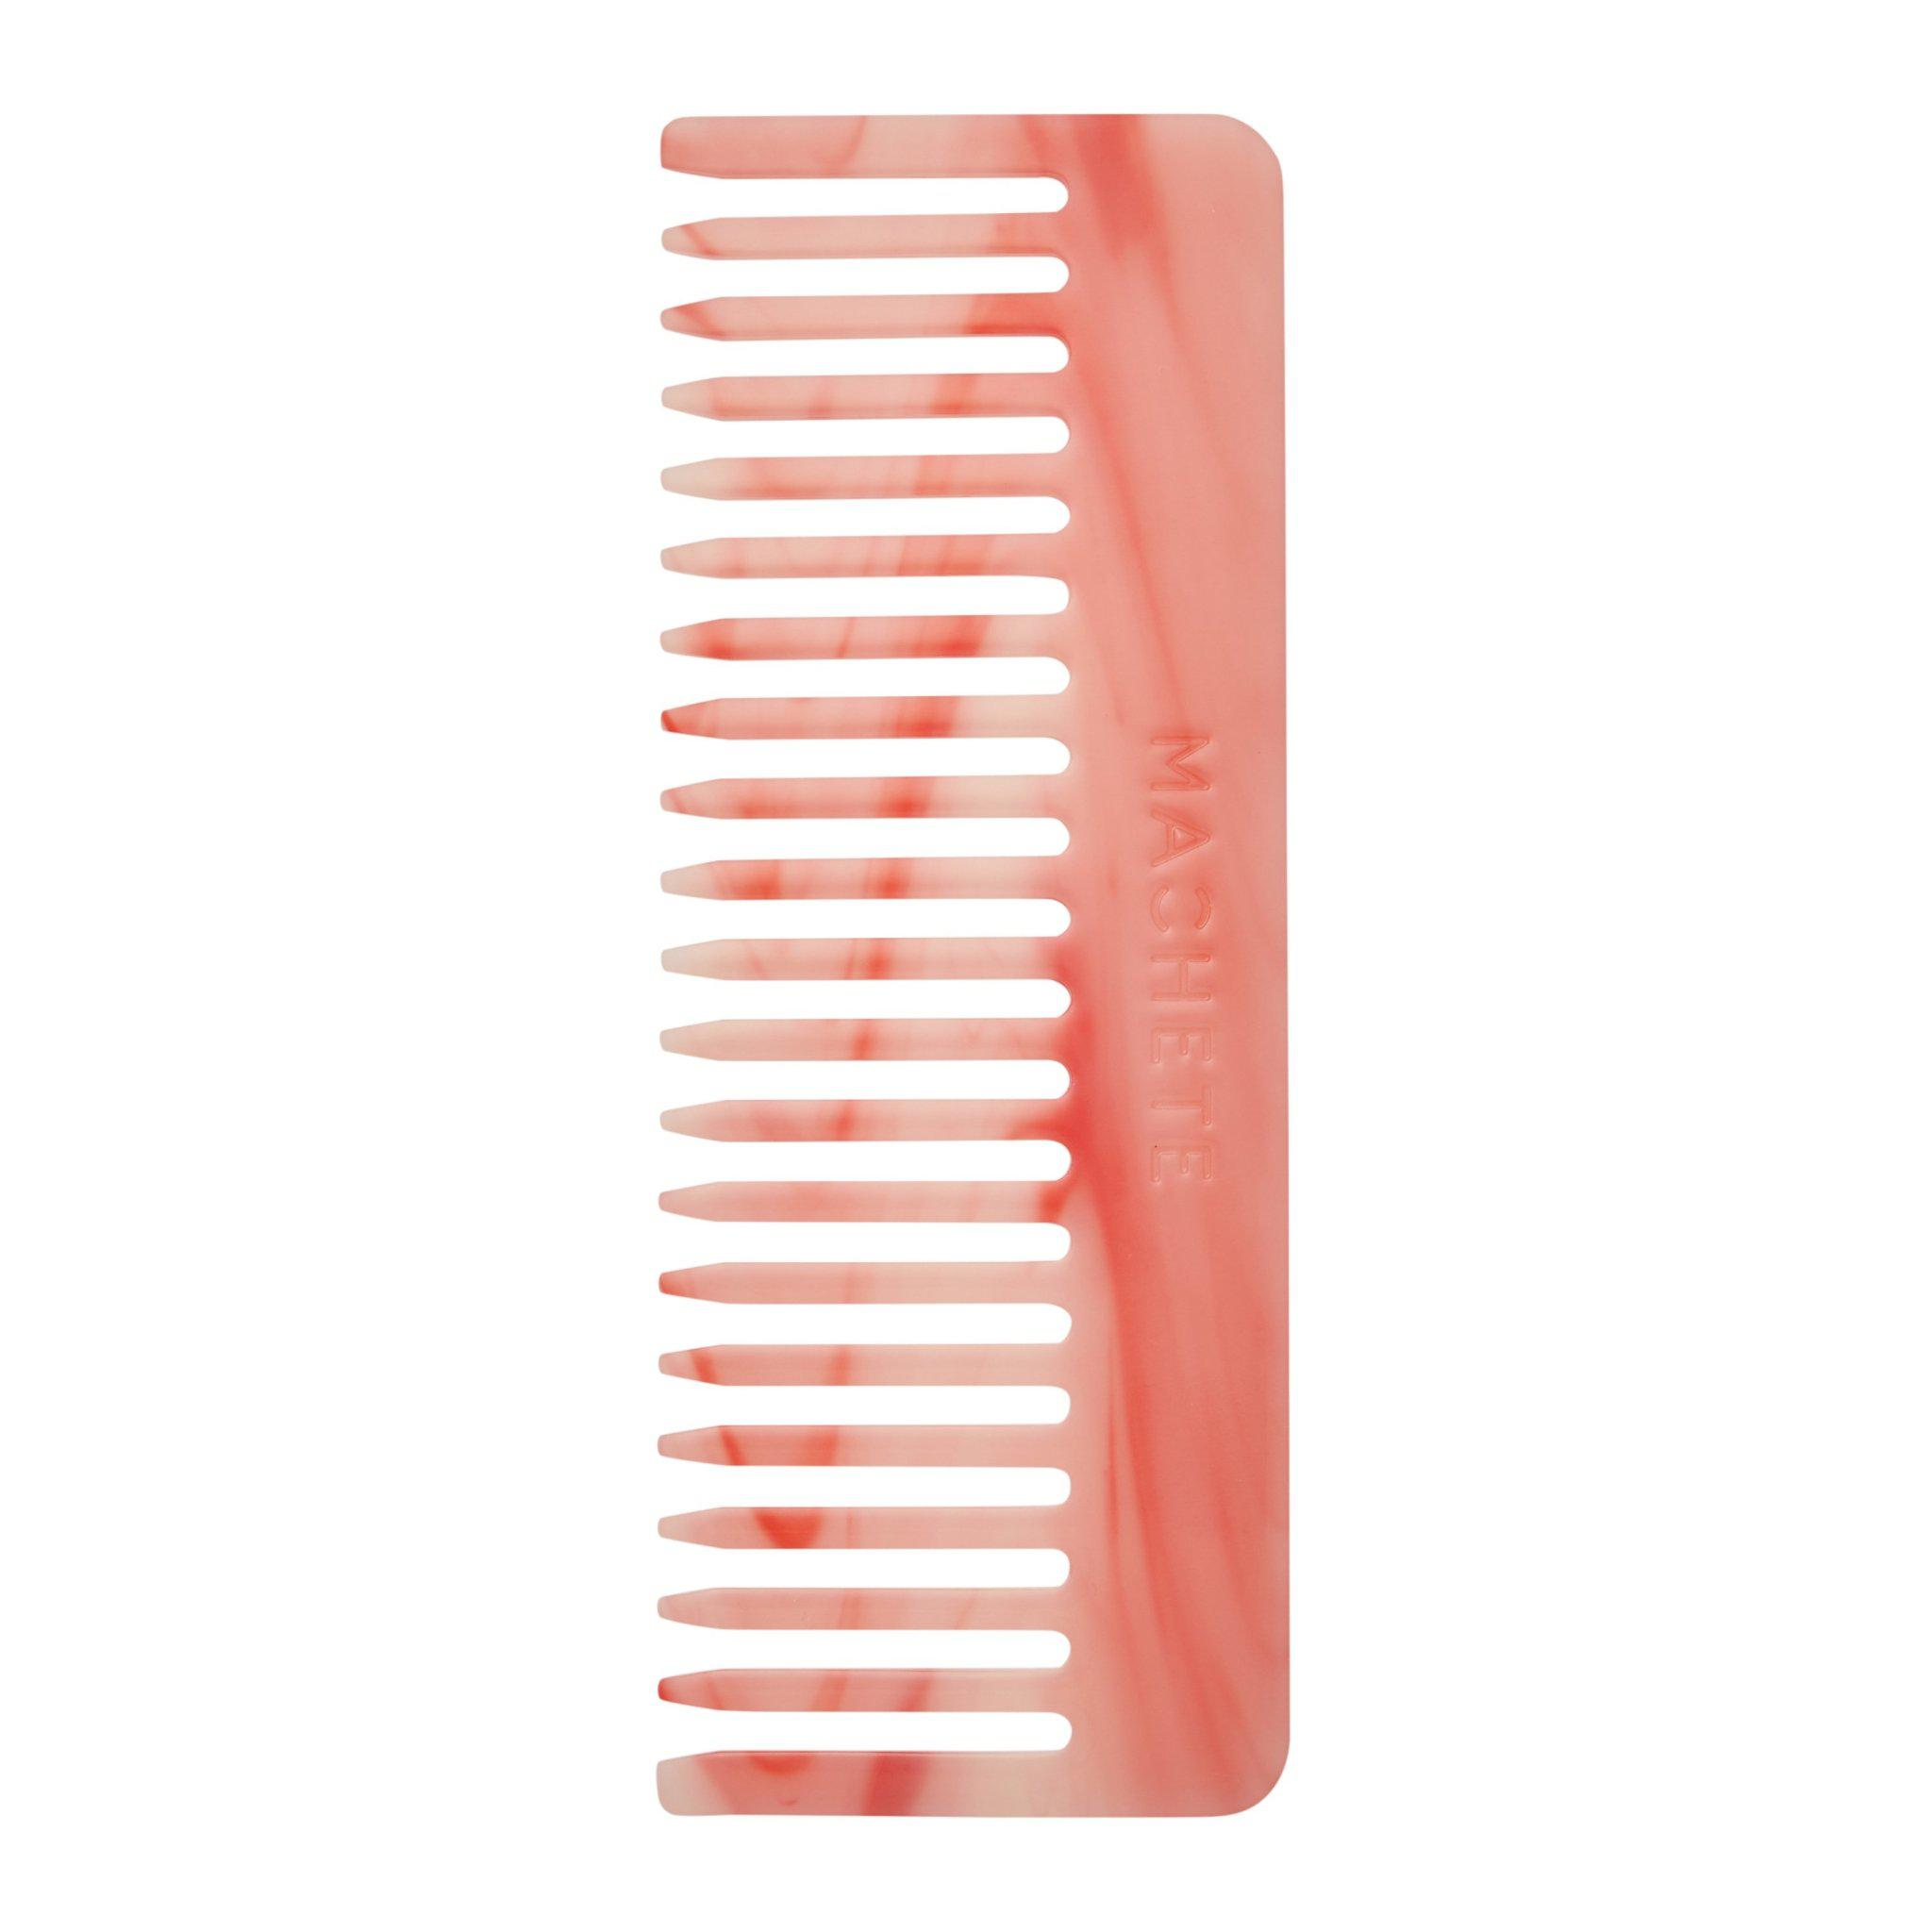 No. 2 Comb in Bright Pink